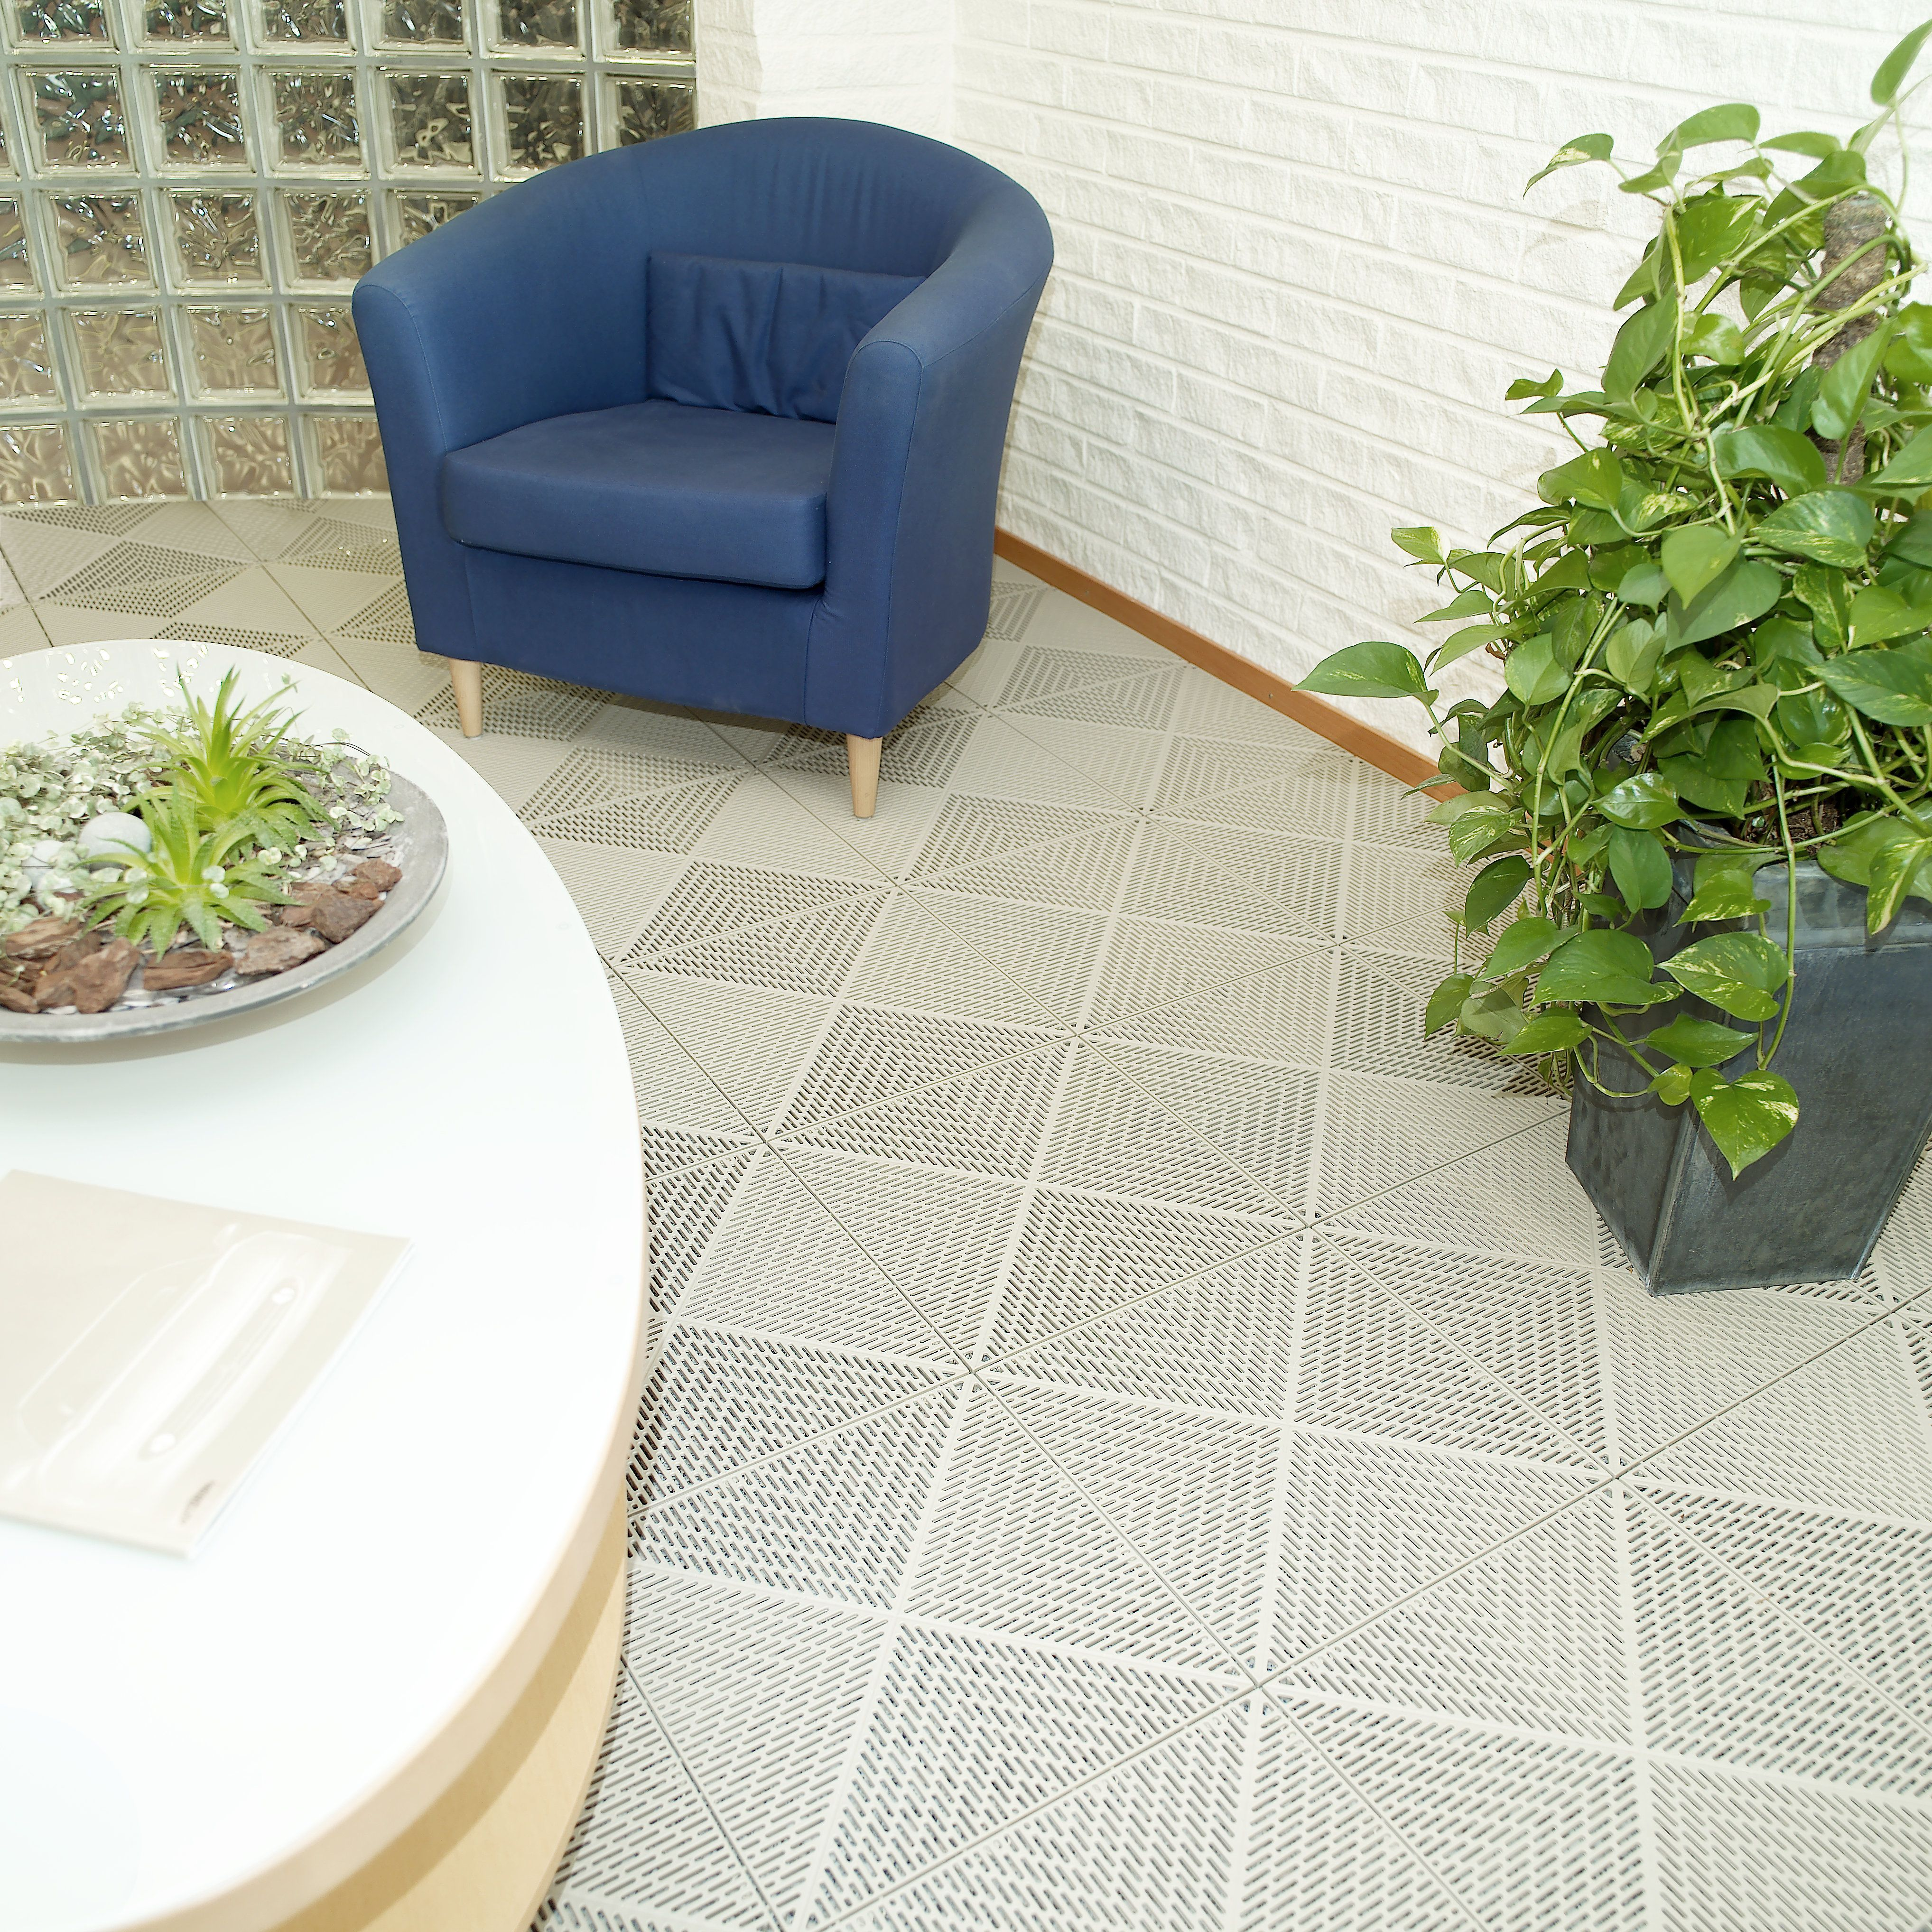 Indoor contemporary flooring.  Easy install, no adhesive or grout, Interlocking system with no mess. Available at www.tacttiles.com